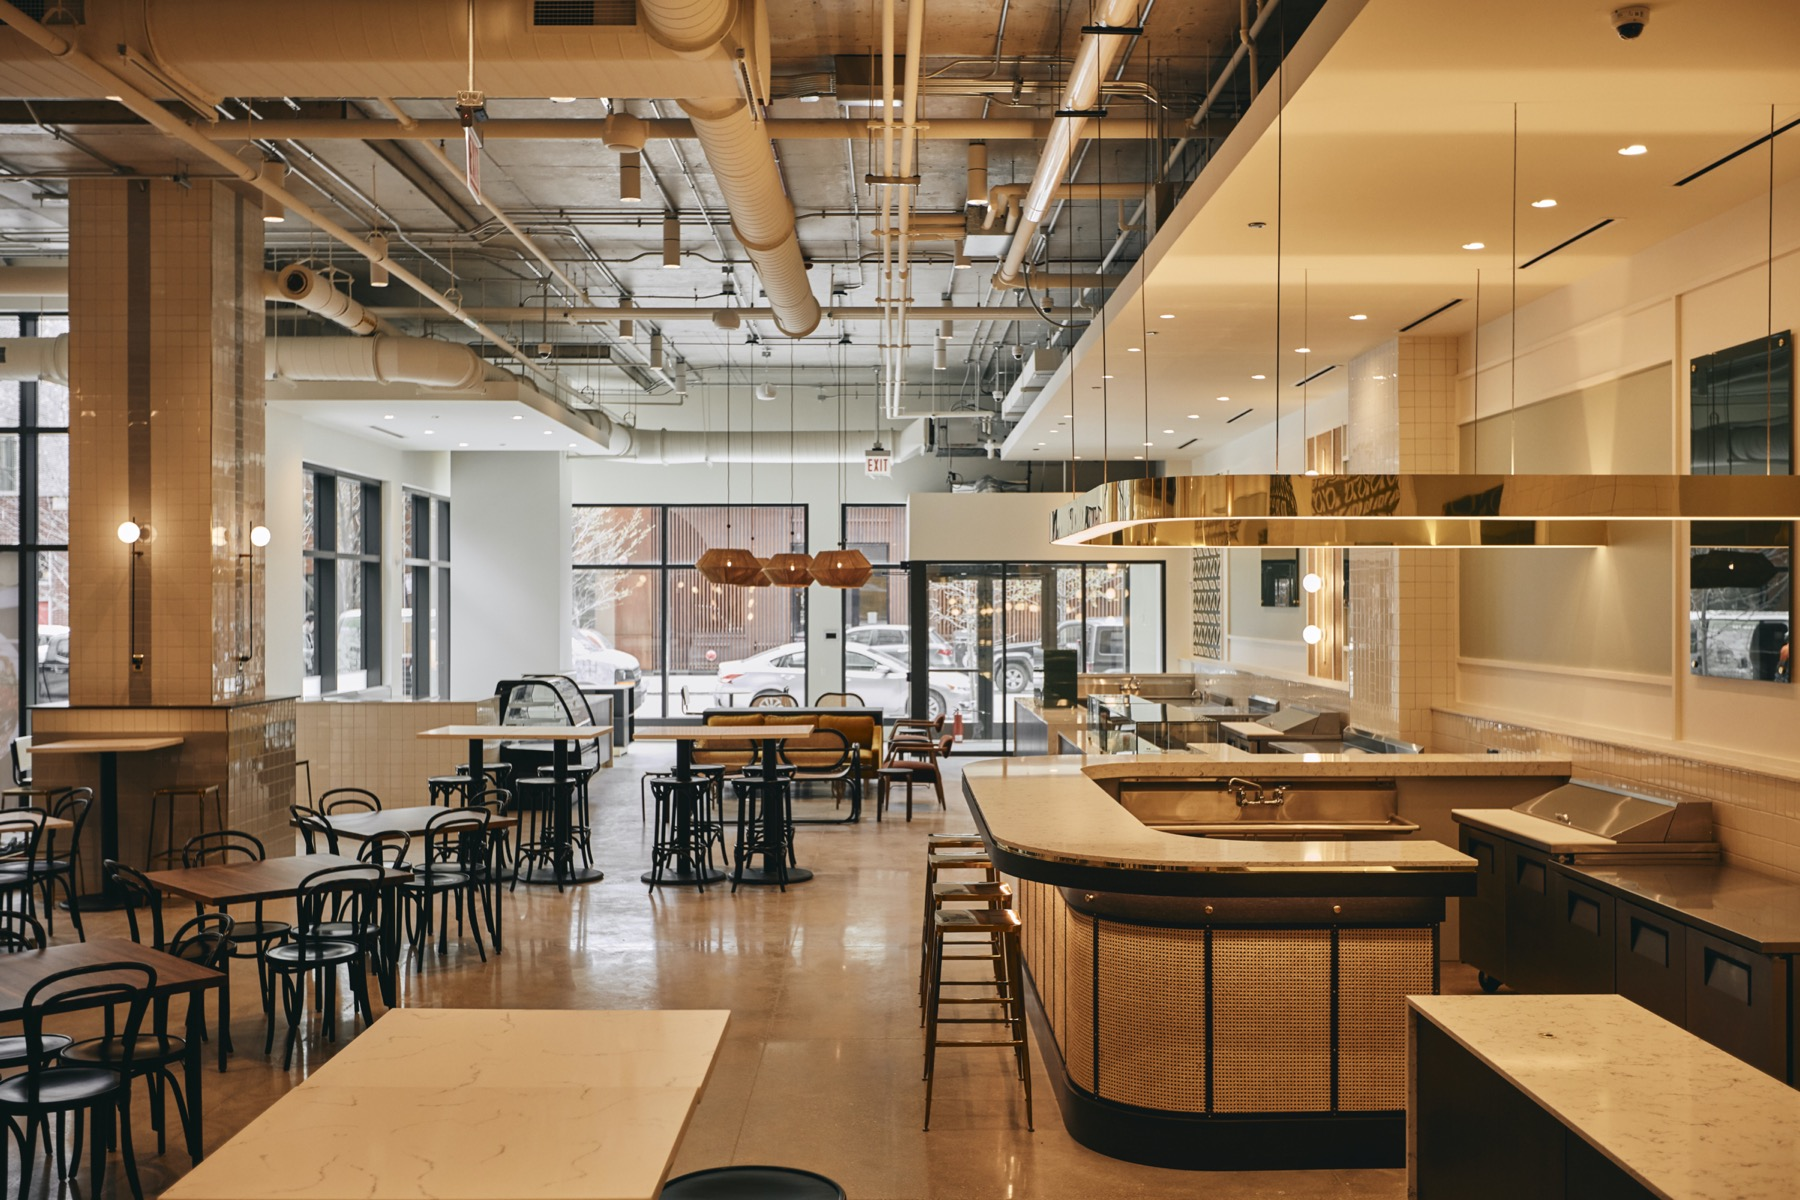 4 new food halls to try in Chicago